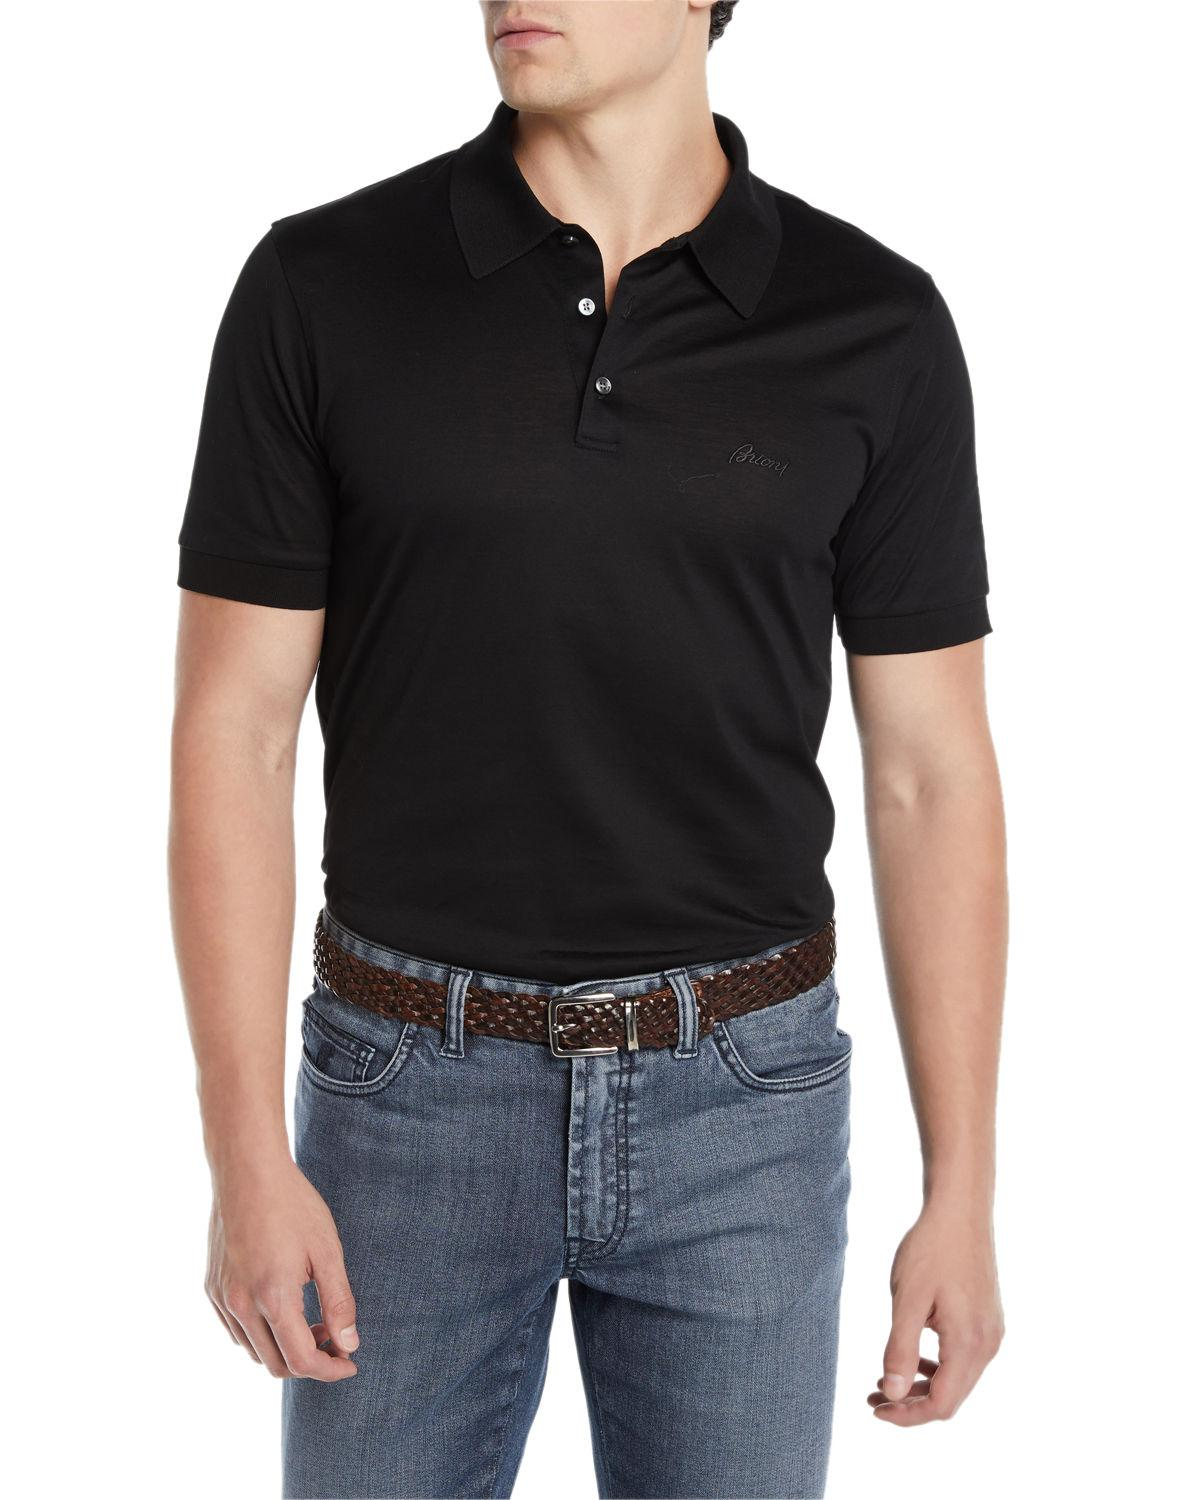 b6190420 Lyst - Brioni Men's Three-button Jersey Polo Shirt in Black for Men